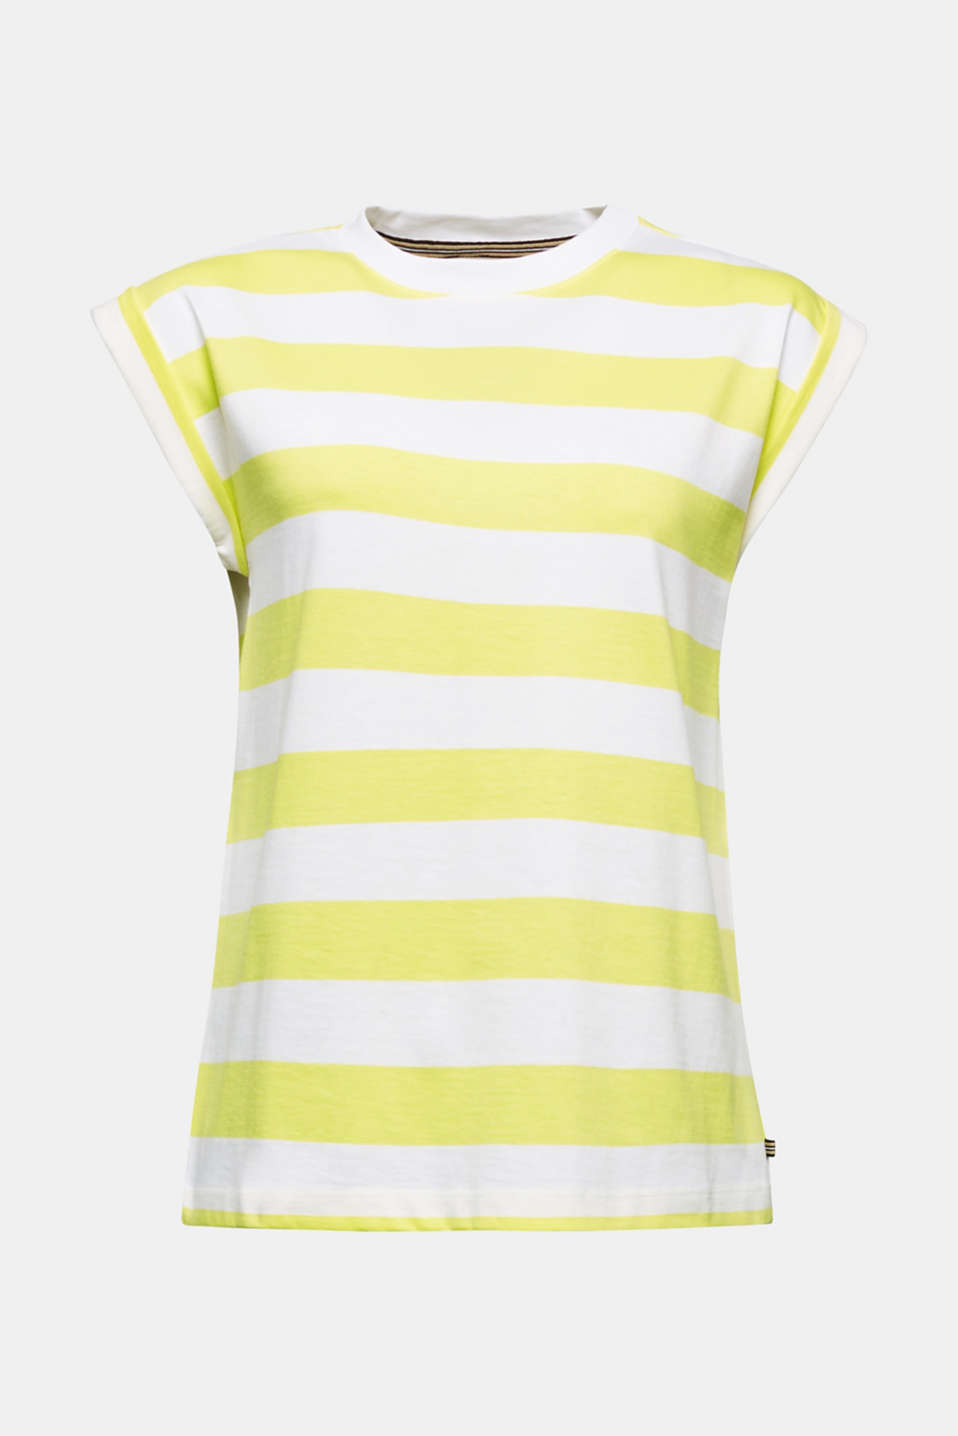 Striped T-shirt, 100% cotton, BRIGHT YELLOW 4, detail image number 5